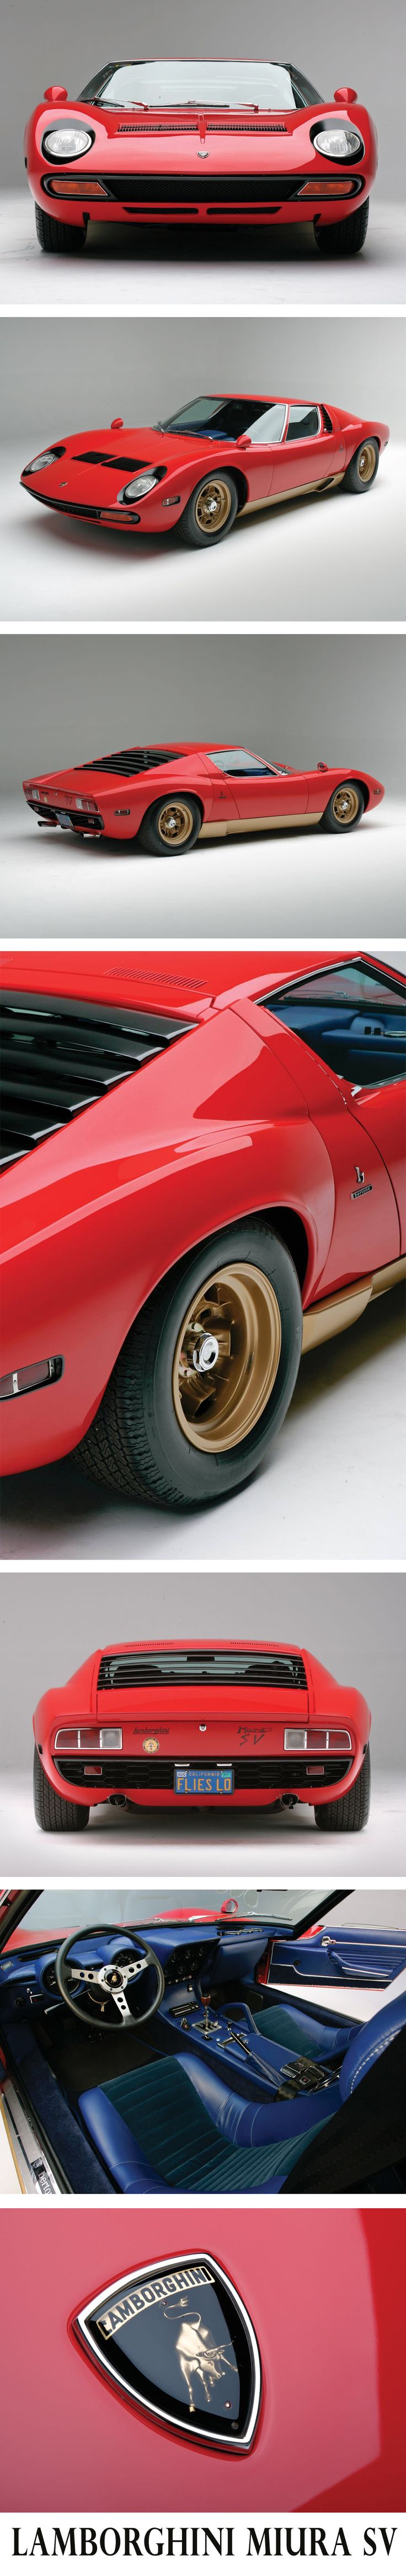 Lamborghini Miura SV - 1971 - 4.0 L, V12, 385 hp, mid-engine. Miura is a Spanish cow breed, SV is for Super Fast (Super Veloce). It is indicated as the starter of extreme performance cars trend. Built in 764 units, its current value can be priced up to 3,000,000 USD. Design by Bertone. Tarmac dominator, gorgeous style, rampage genesis. #Lamborghini #miura #aventador #red #luxurycars